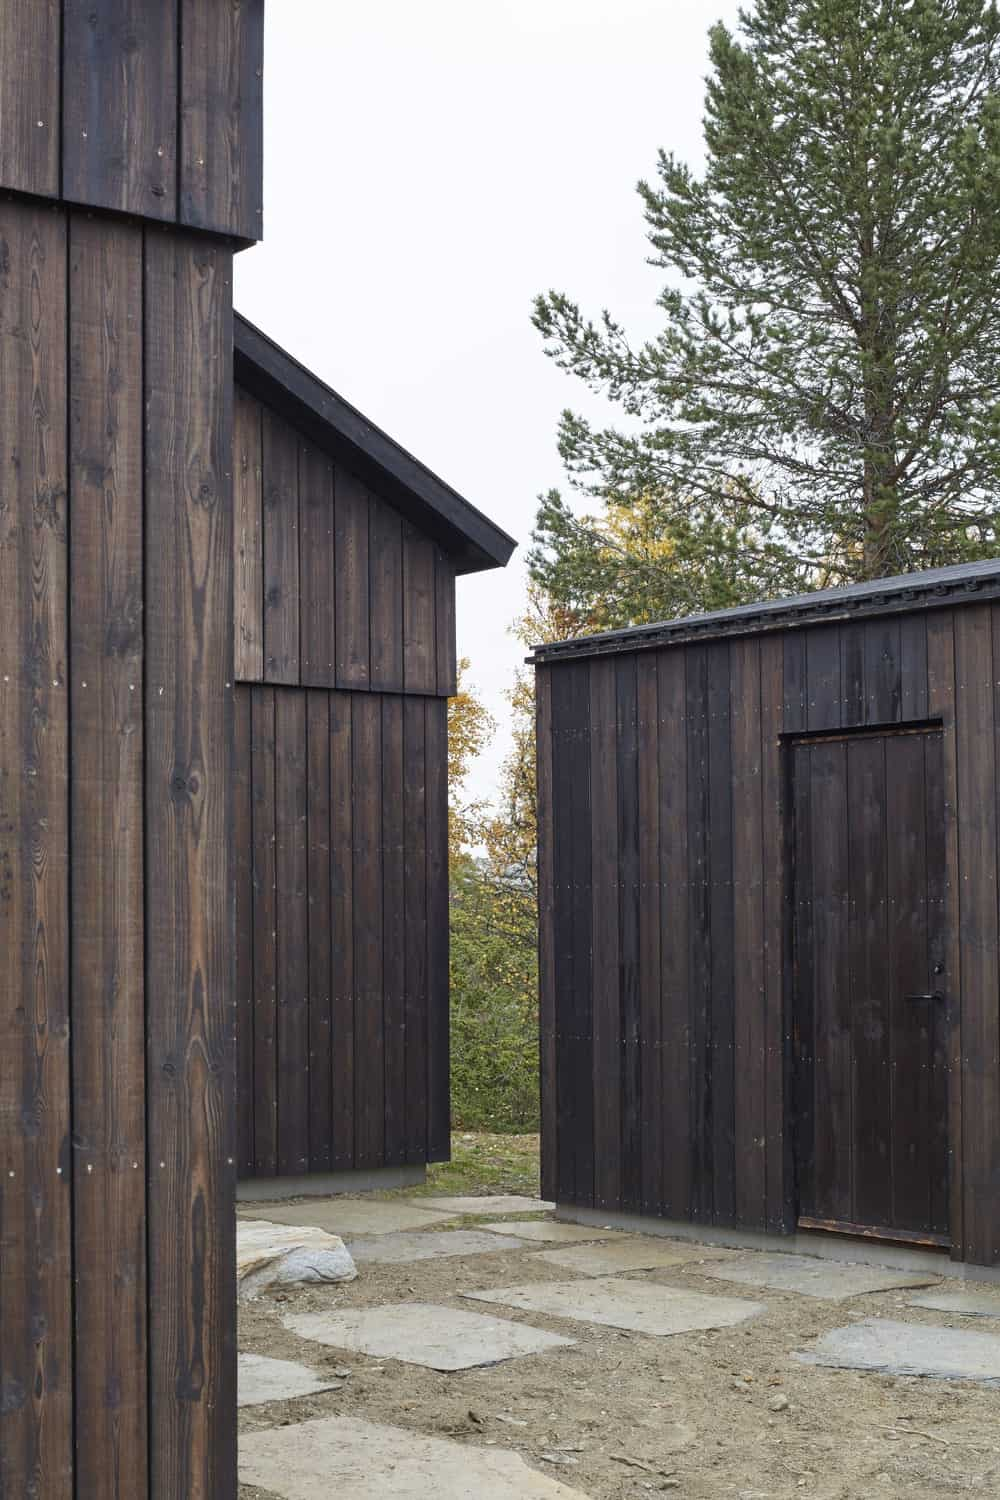 The structures of the house are consistent with its dark wooden tones and design as well as doors that blend with the walls.